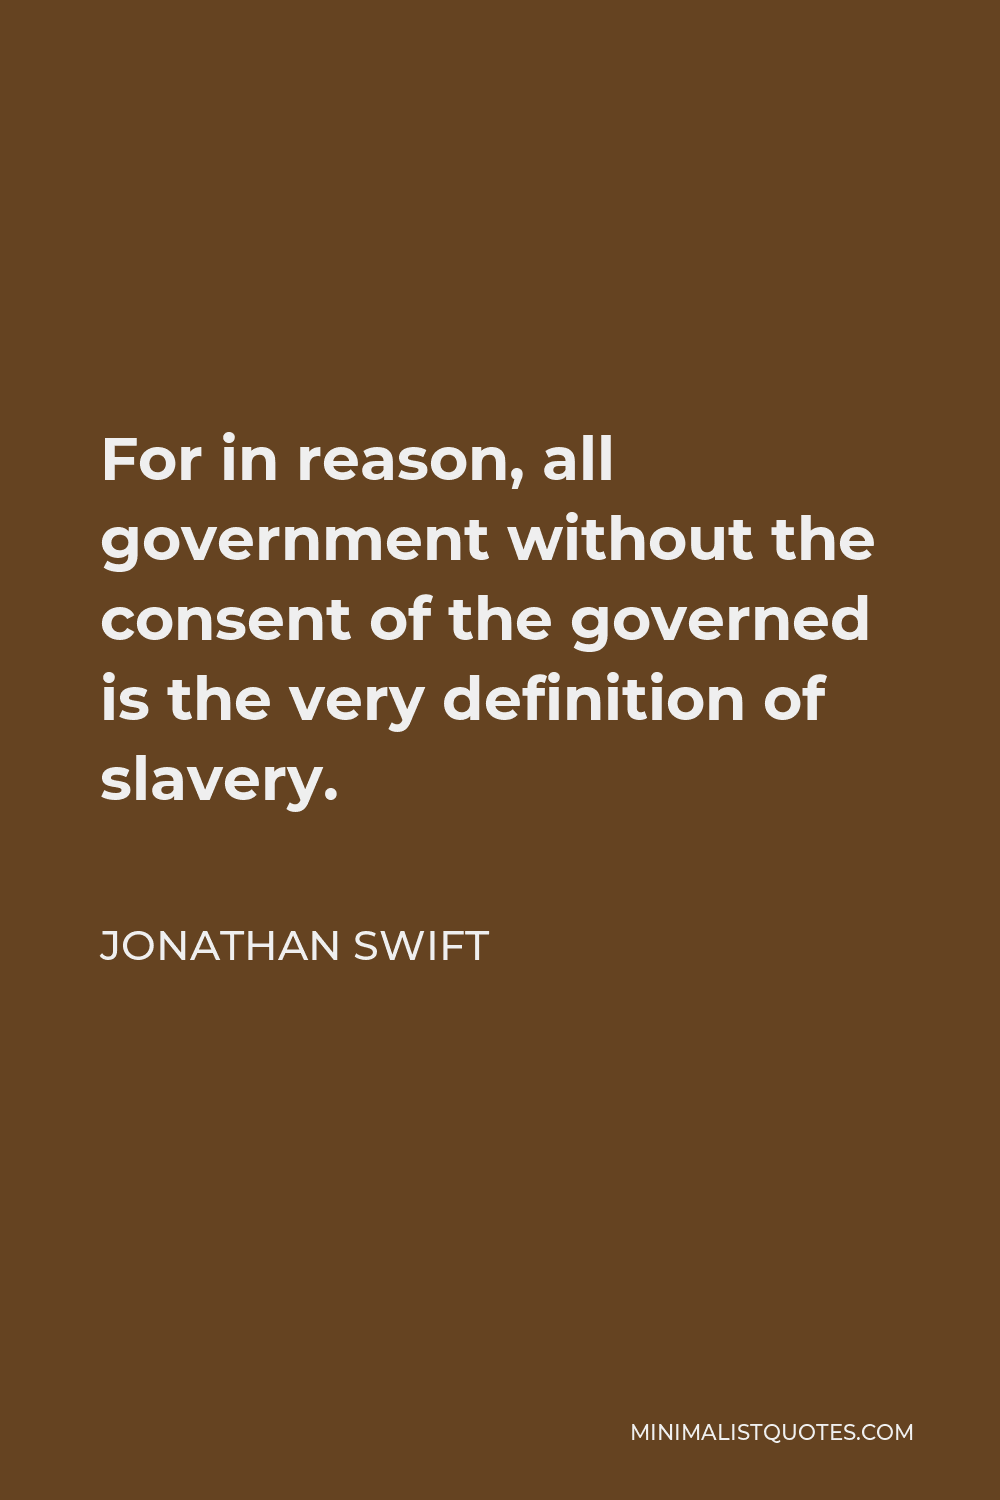 Jonathan Swift Quote - For in reason, all government without the consent of the governed is the very definition of slavery.